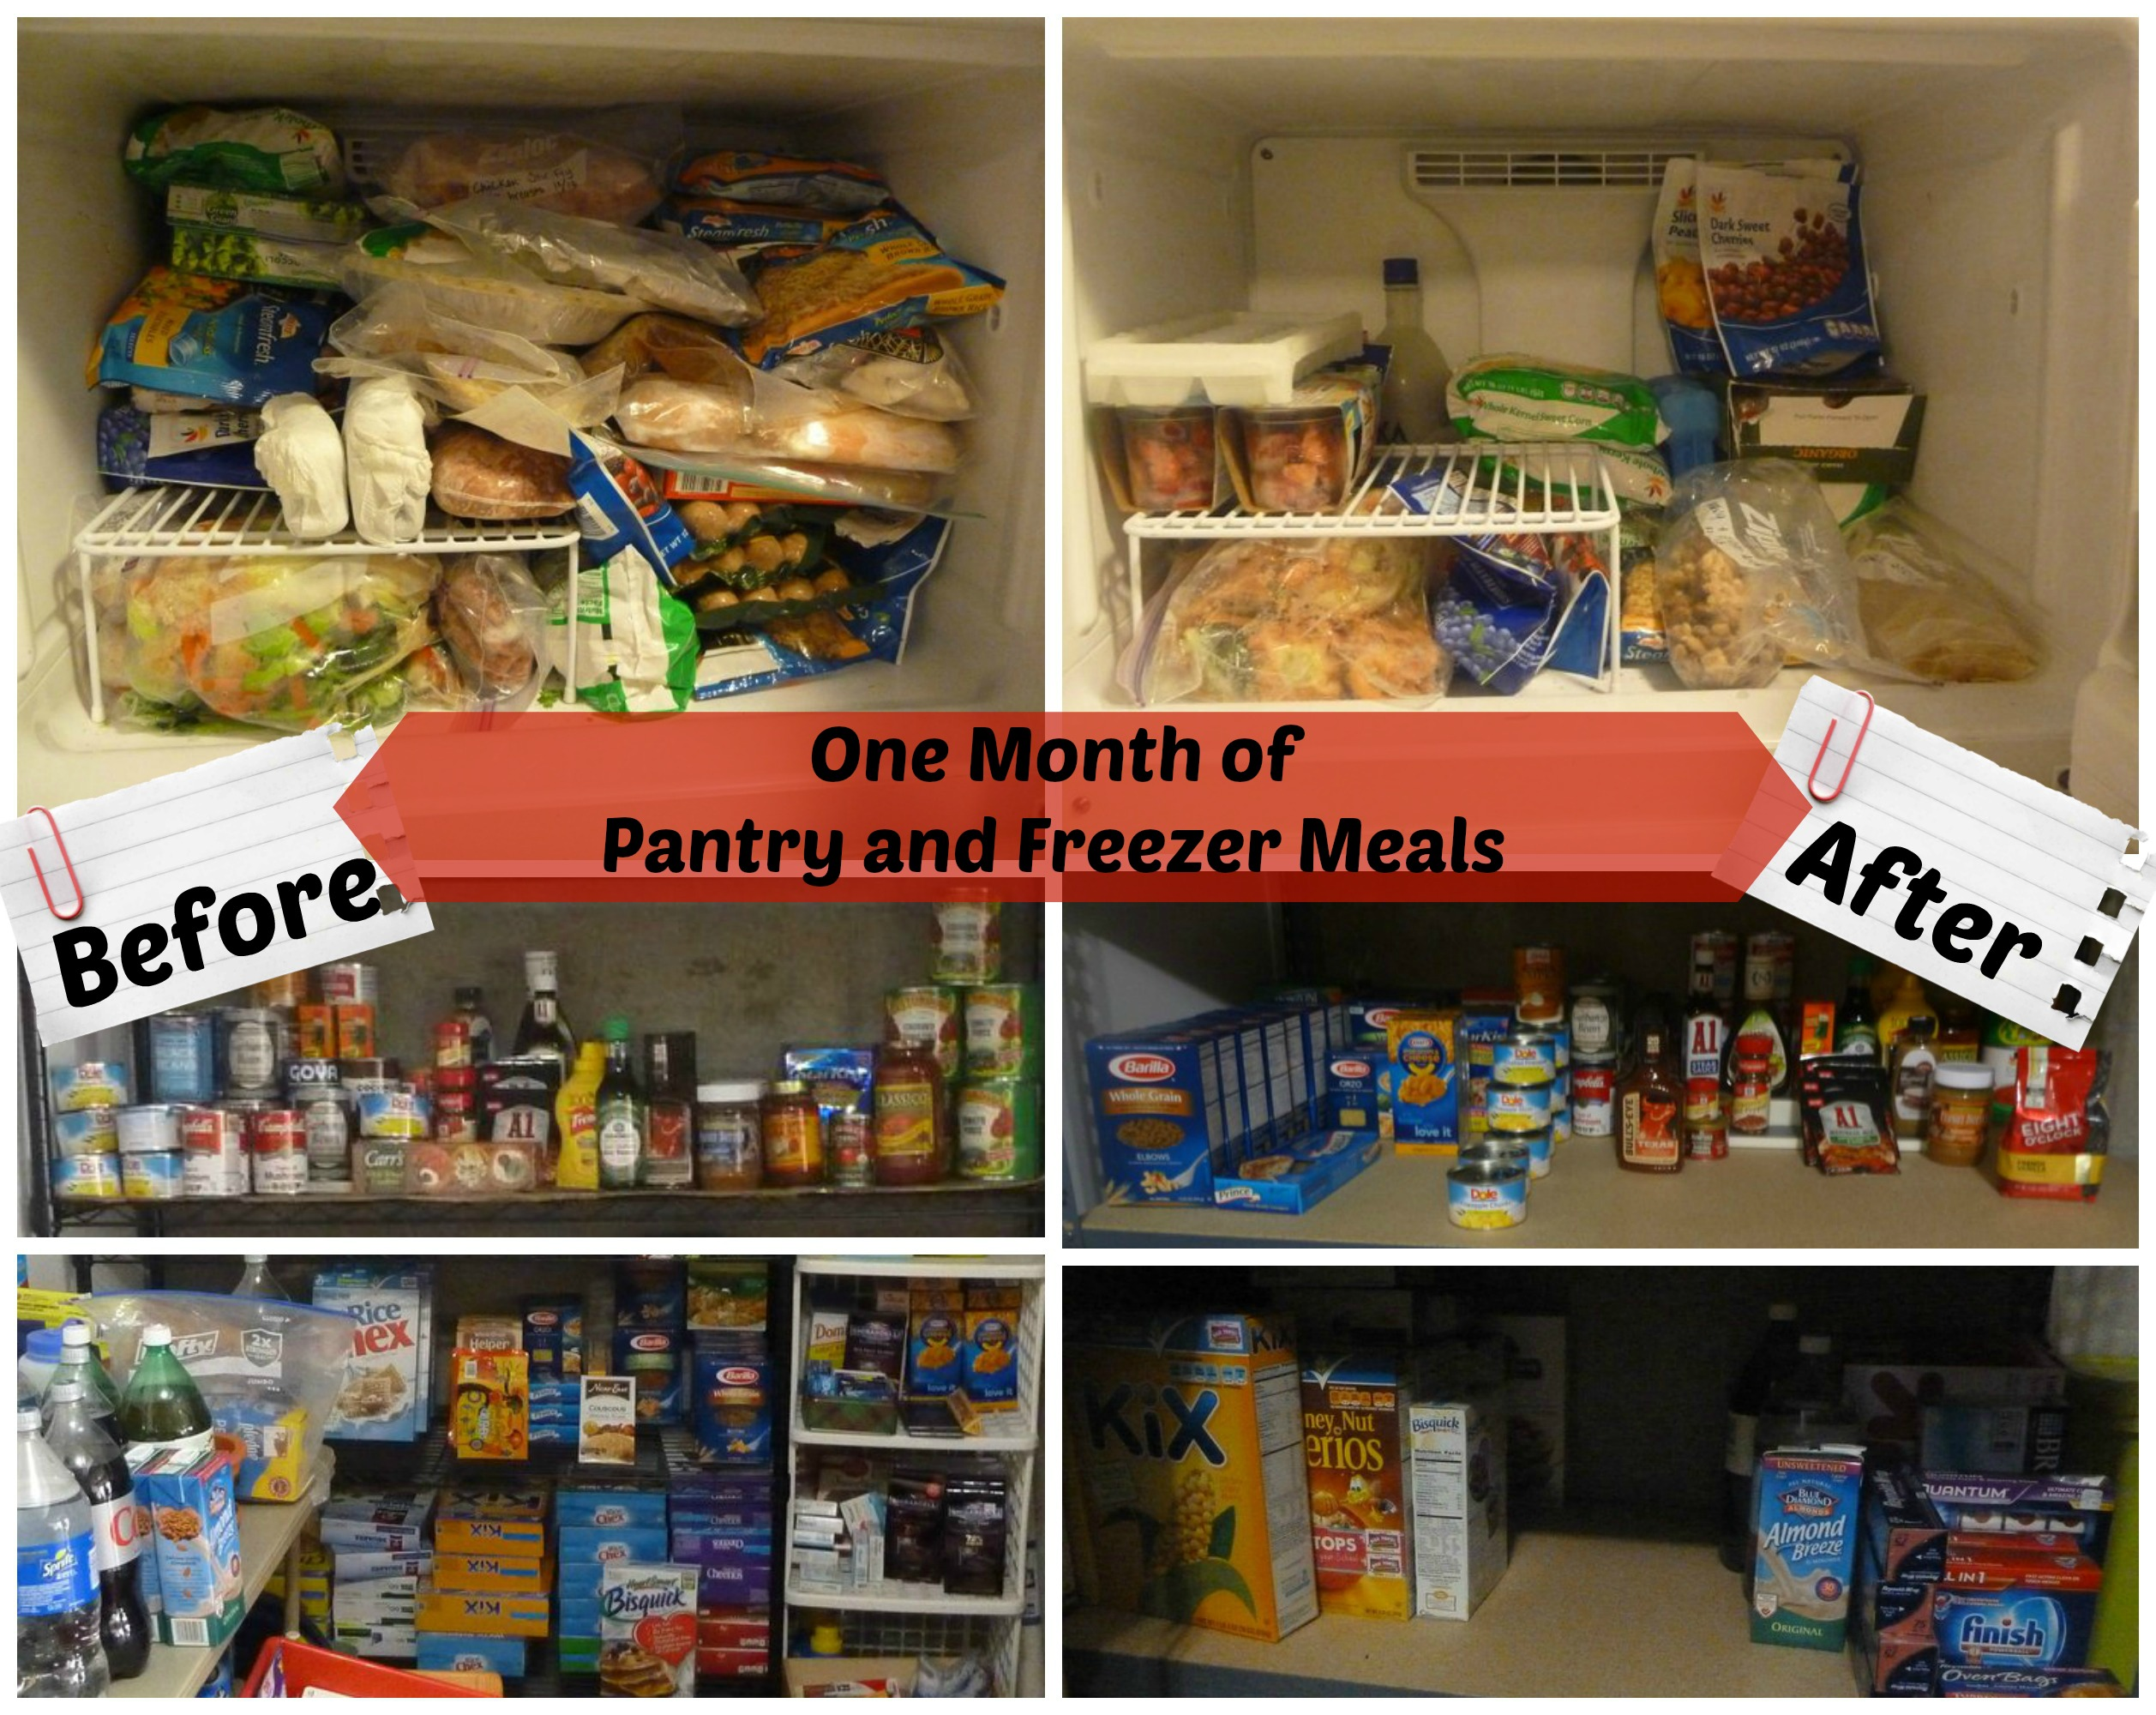 One Month of Pantry and Freezer Meals